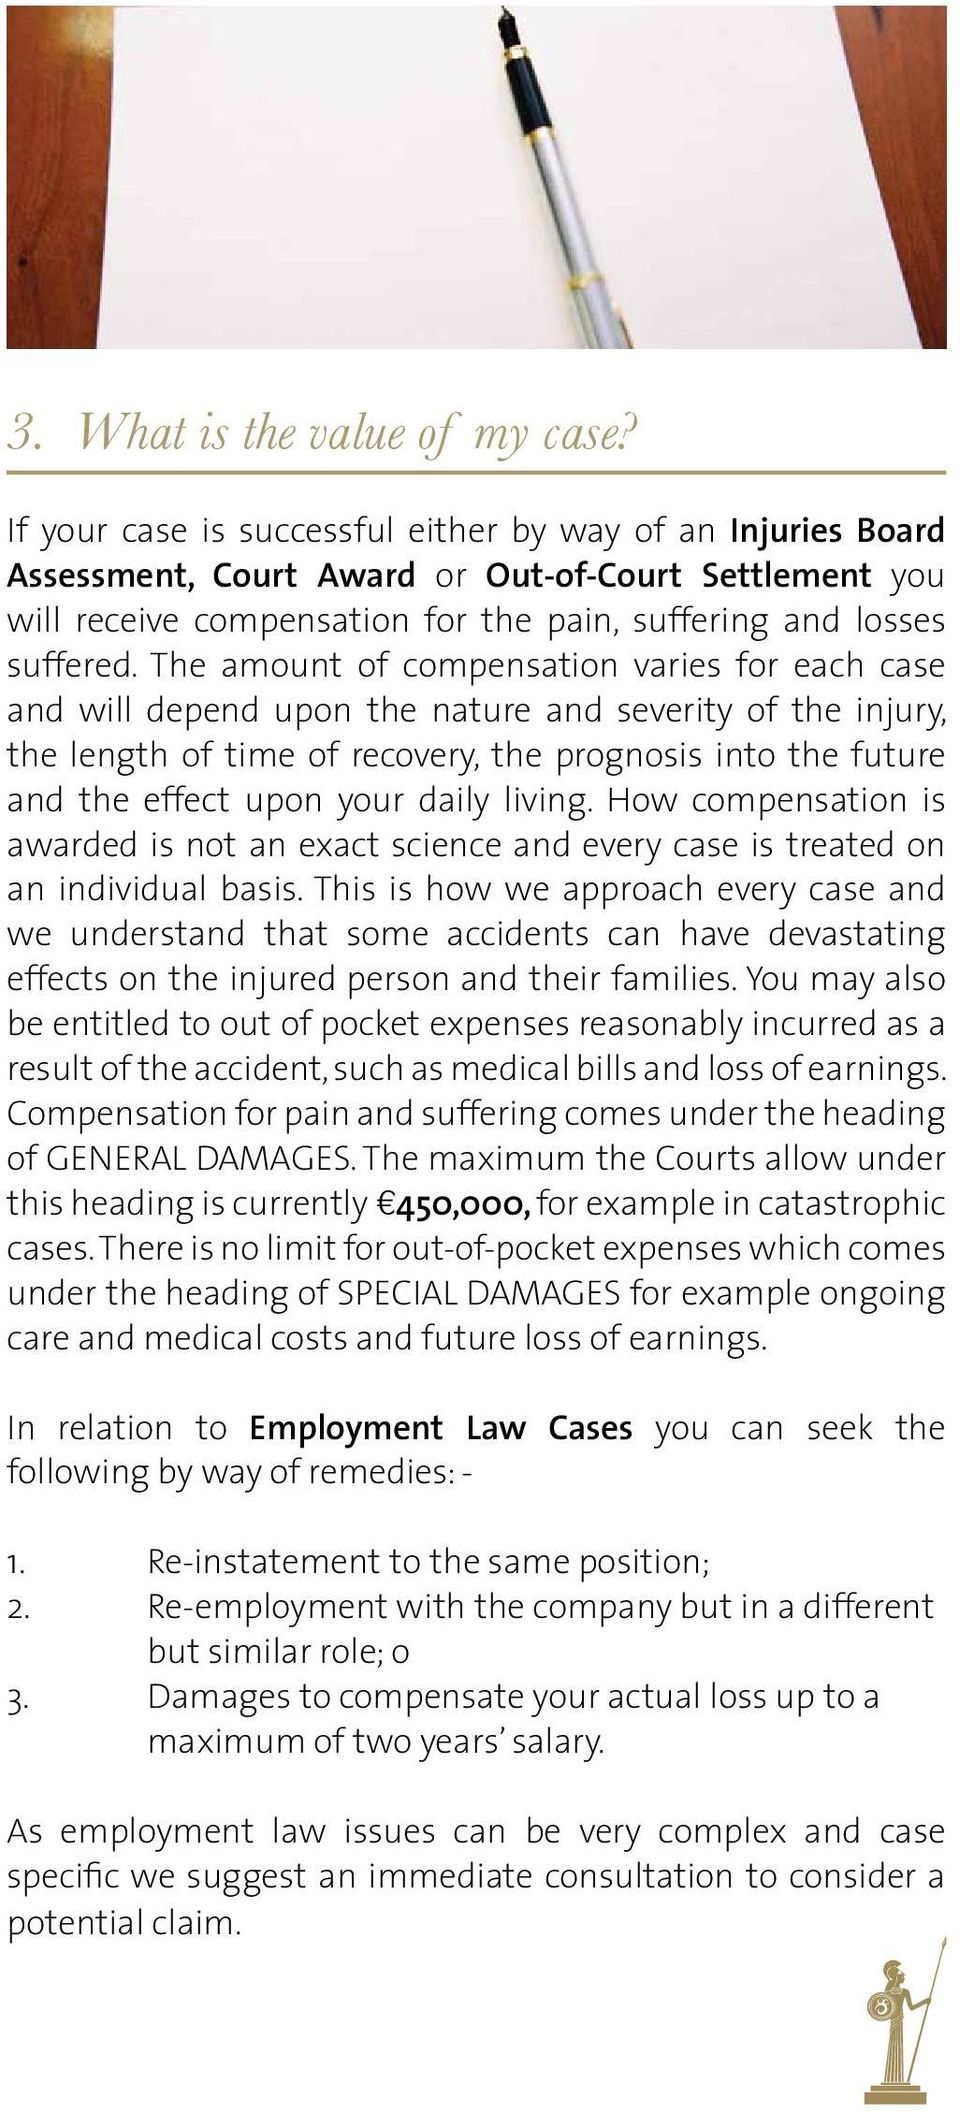 The amount of compensation varies for each case and will depend upon the nature and severity of the injury, the length of time of recovery, the prognosis into the future and the effect upon your